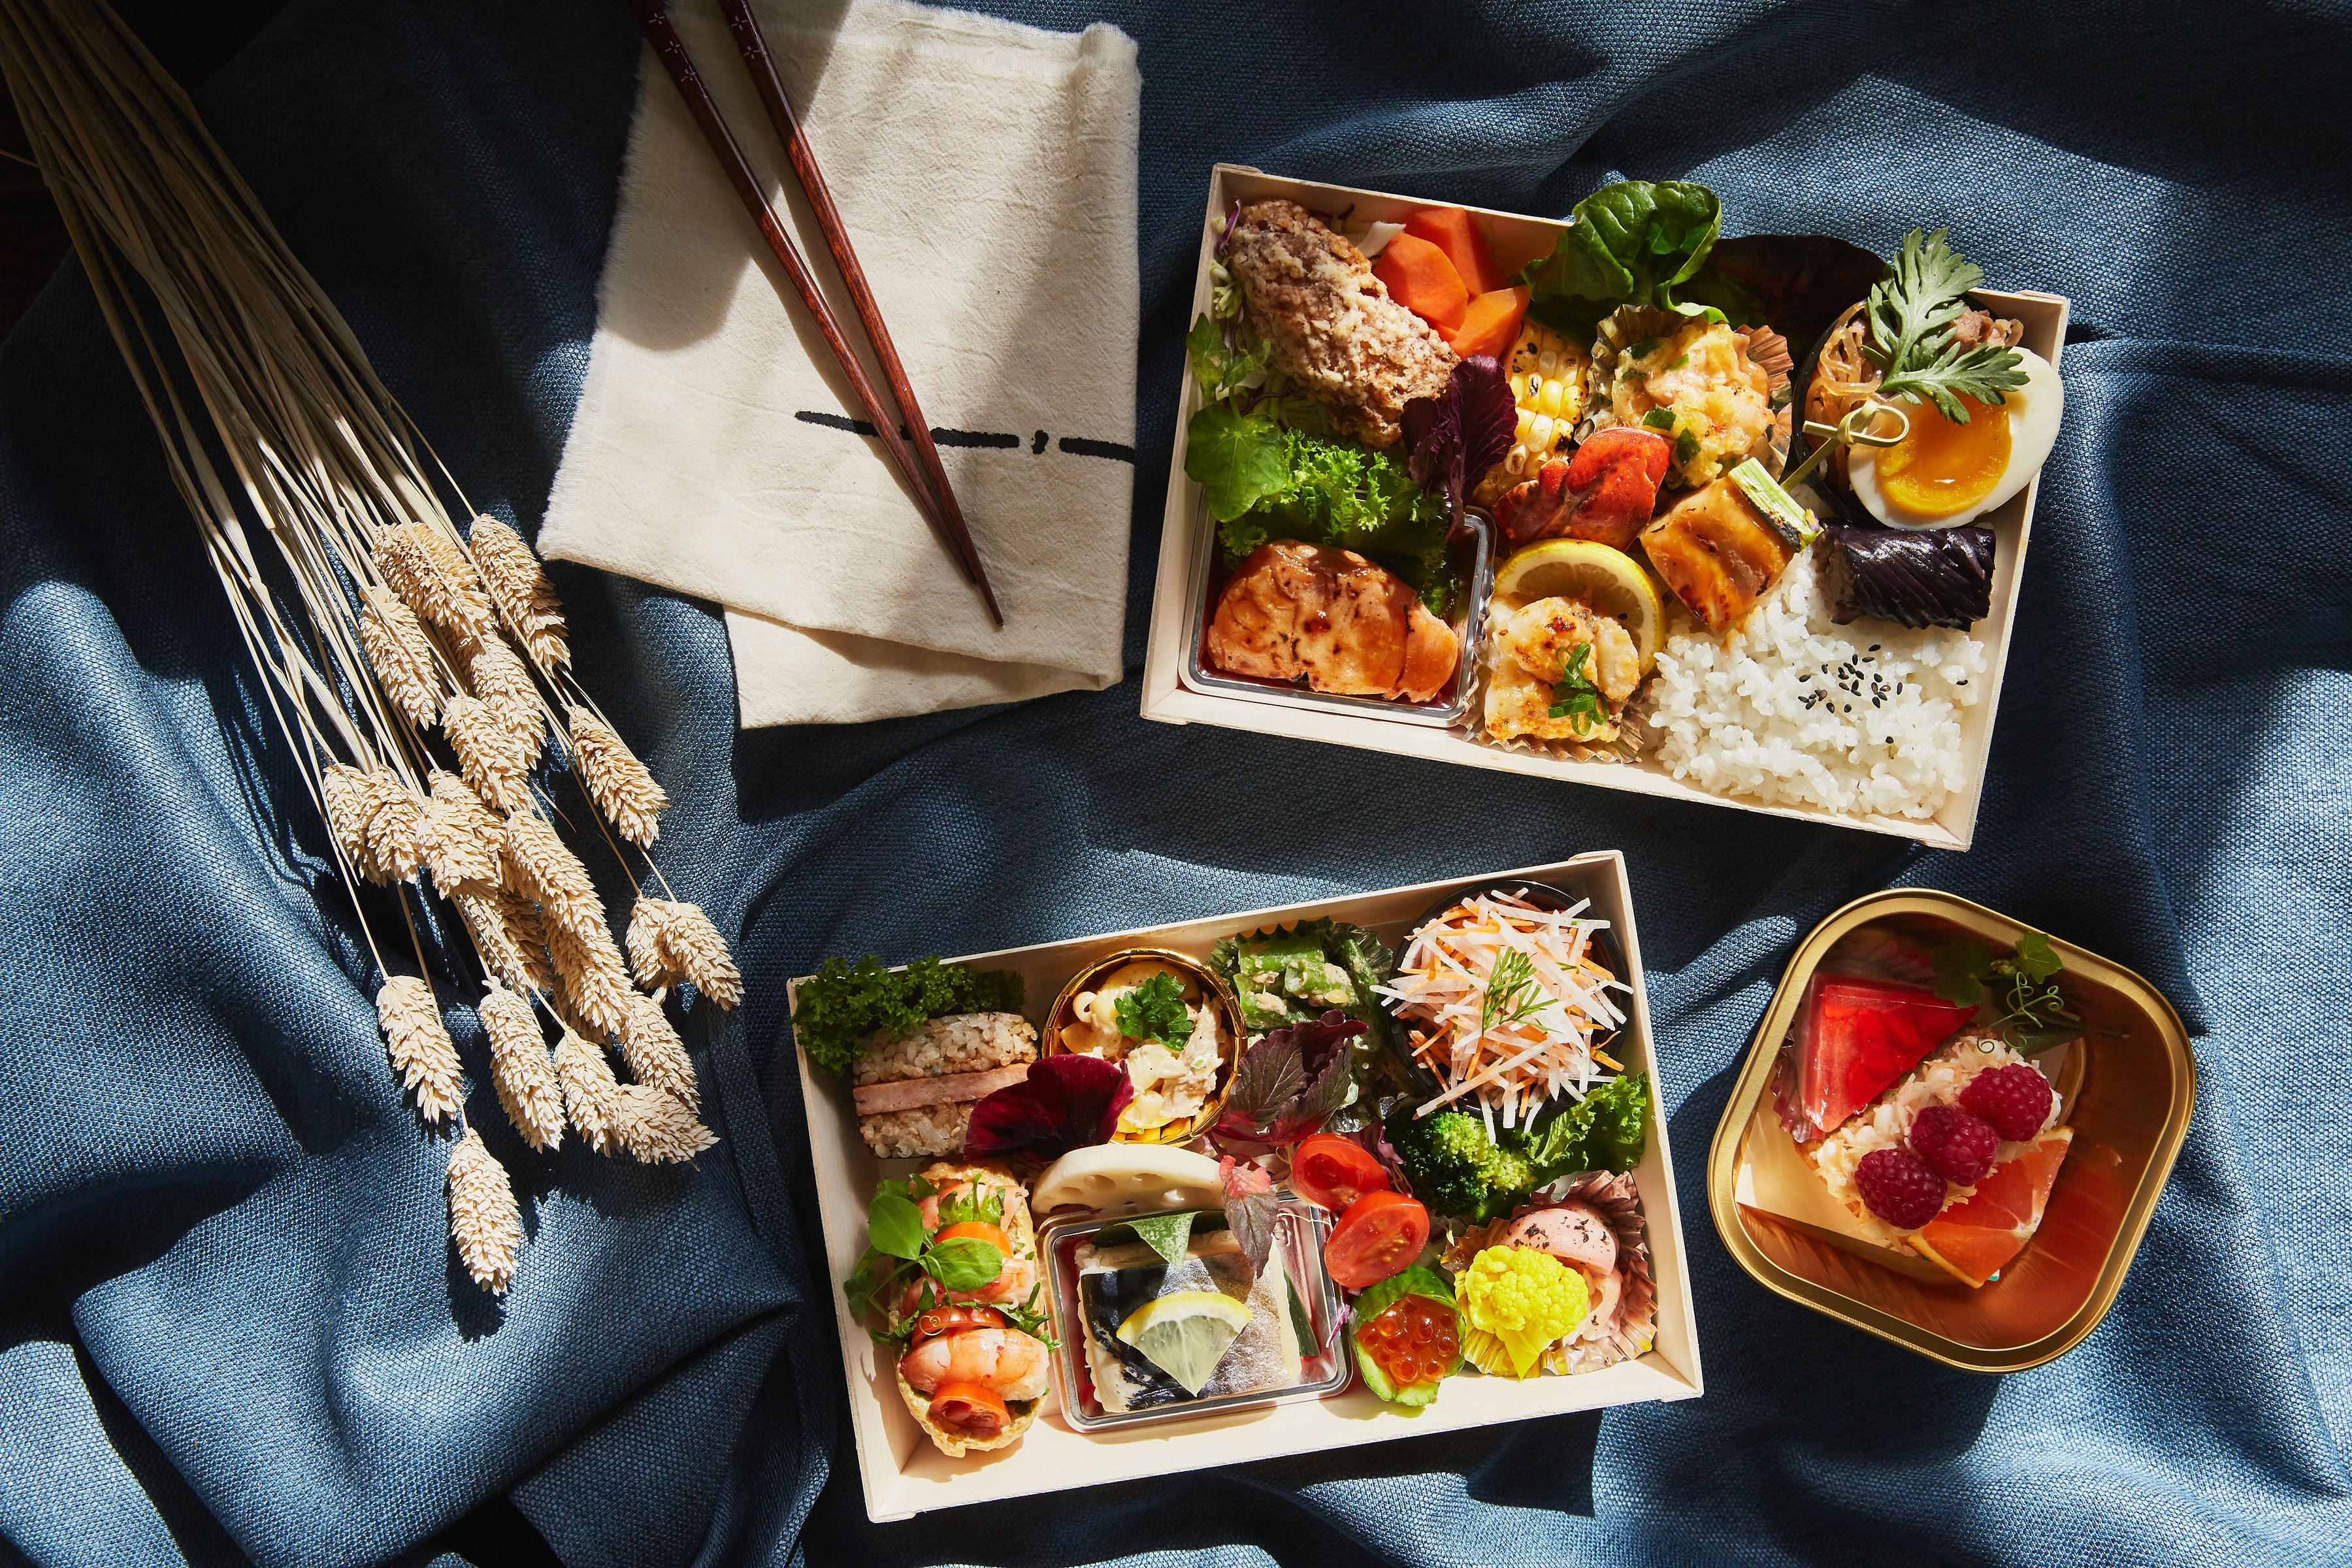 A pair of bento boxes shown from above in moody lighting, draped in blue cloth.